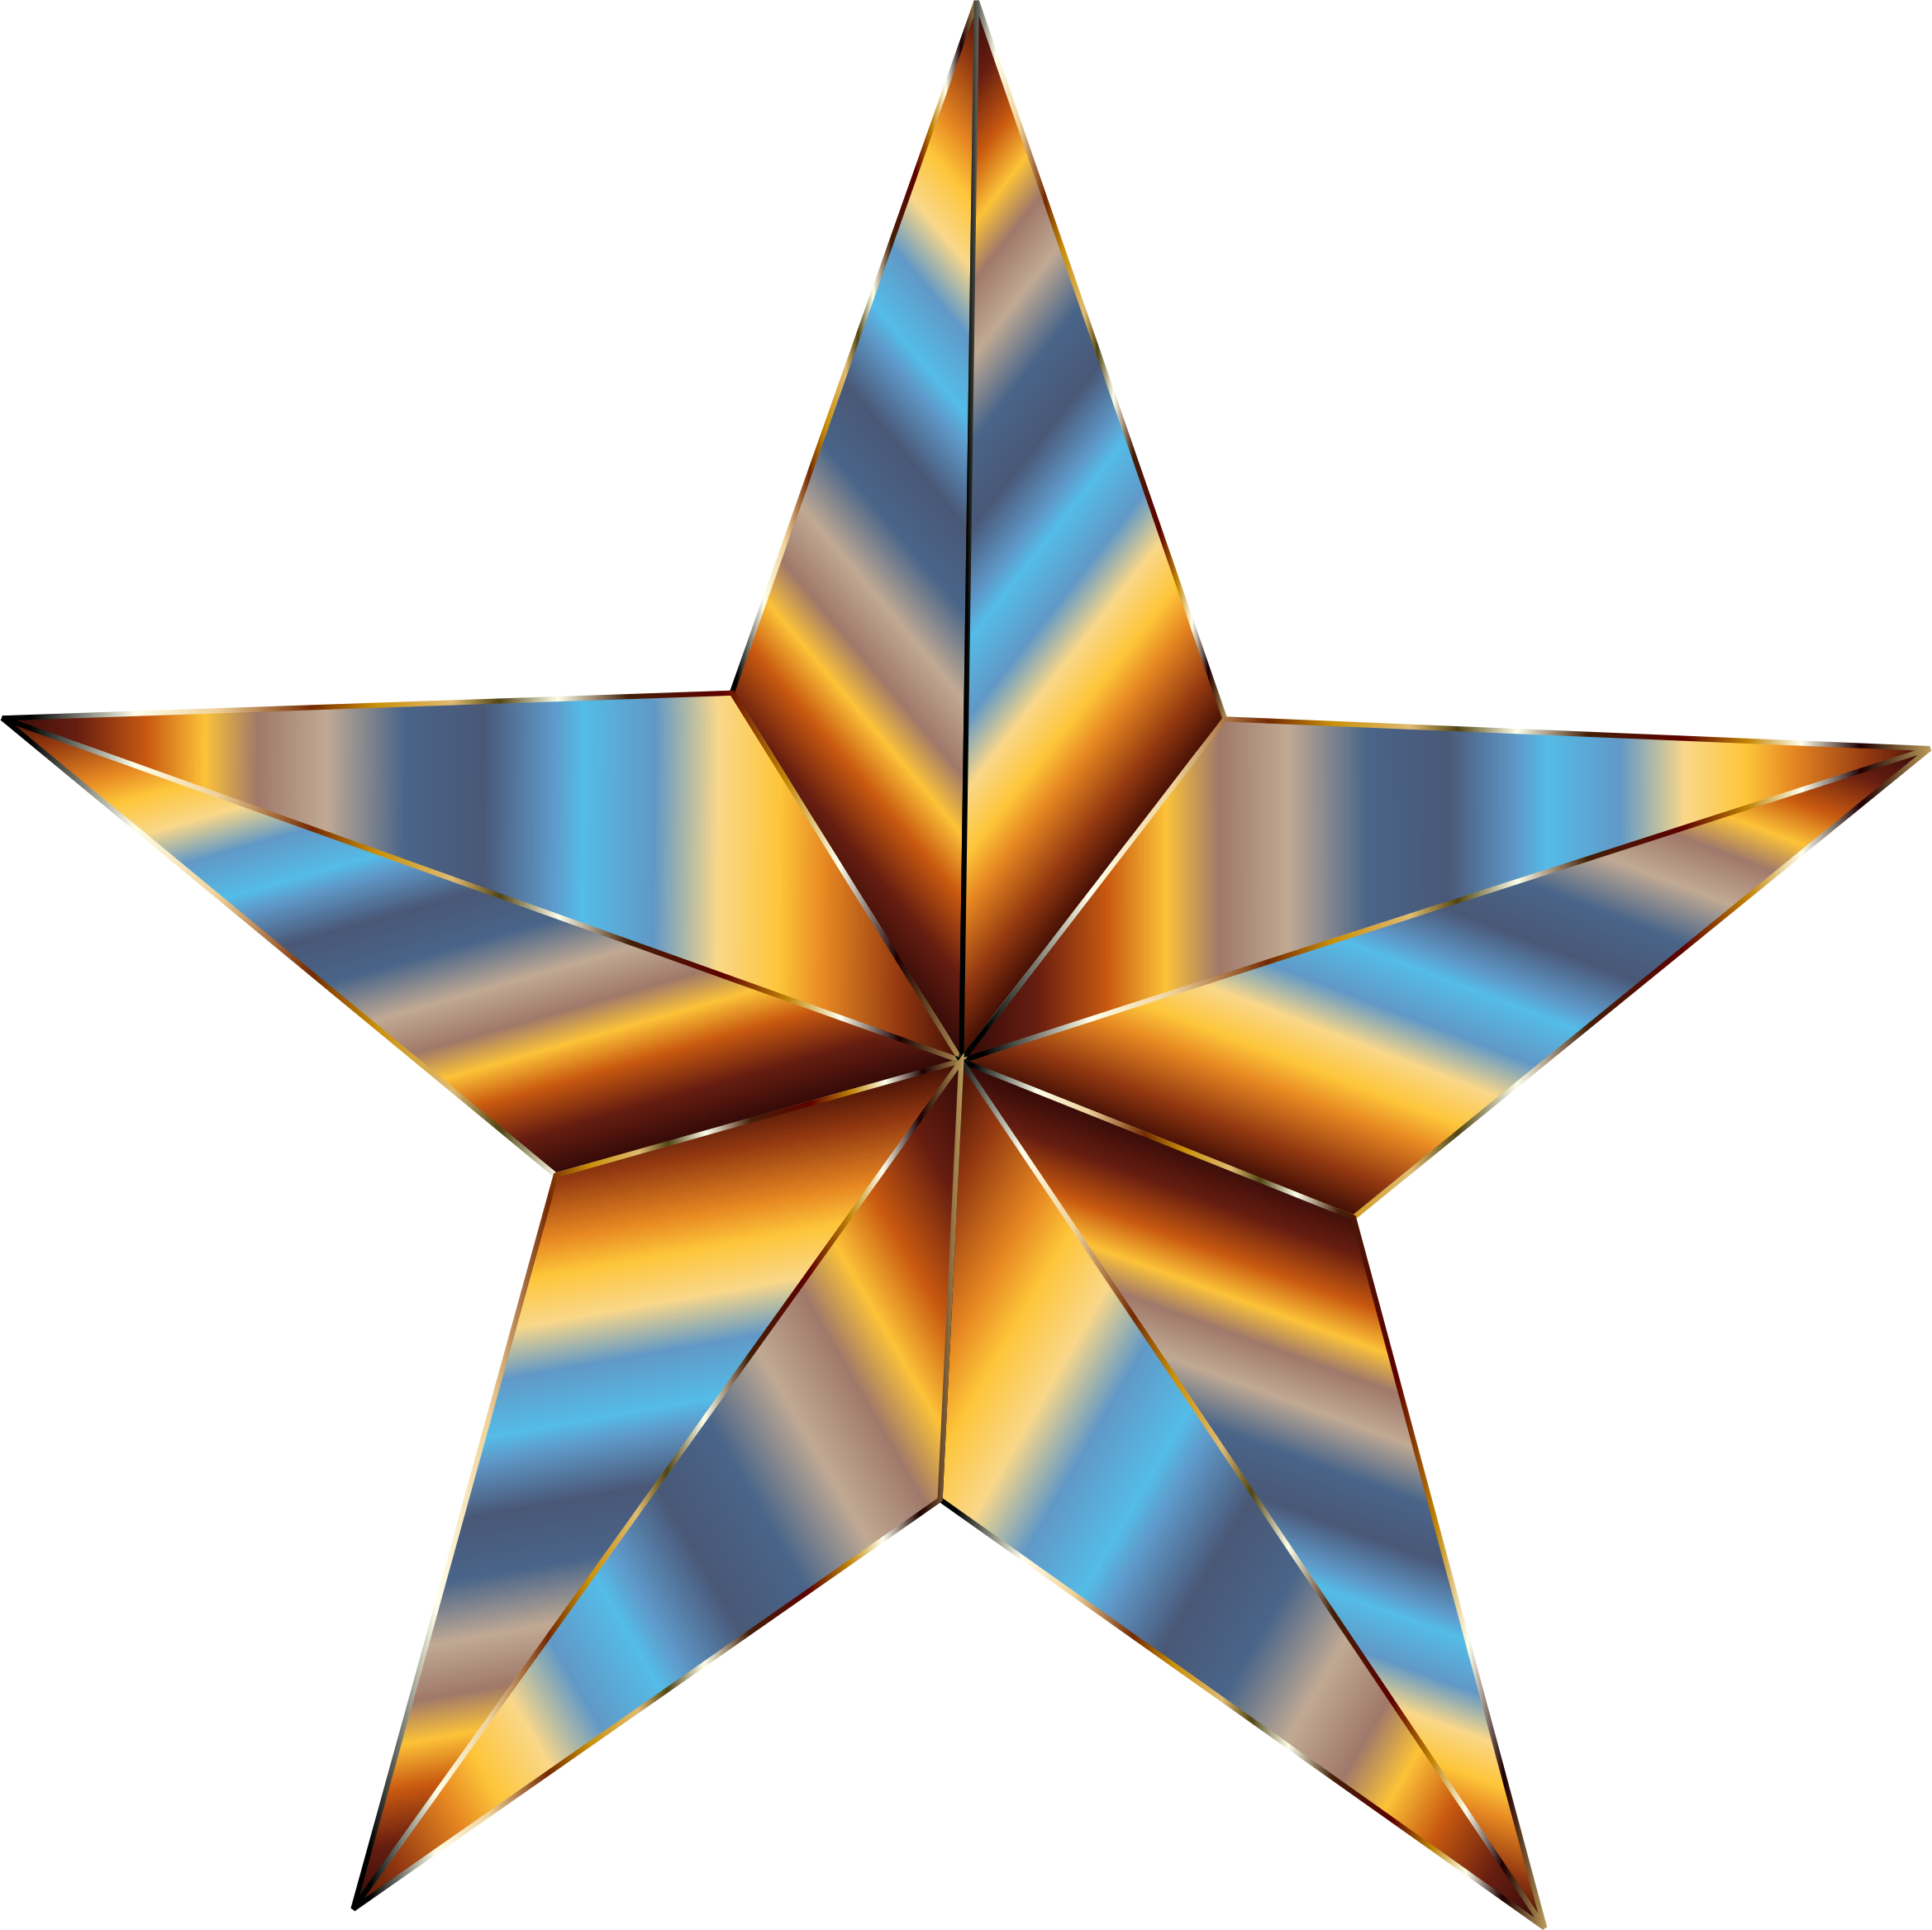 Prismatic Star 2 by GDJ